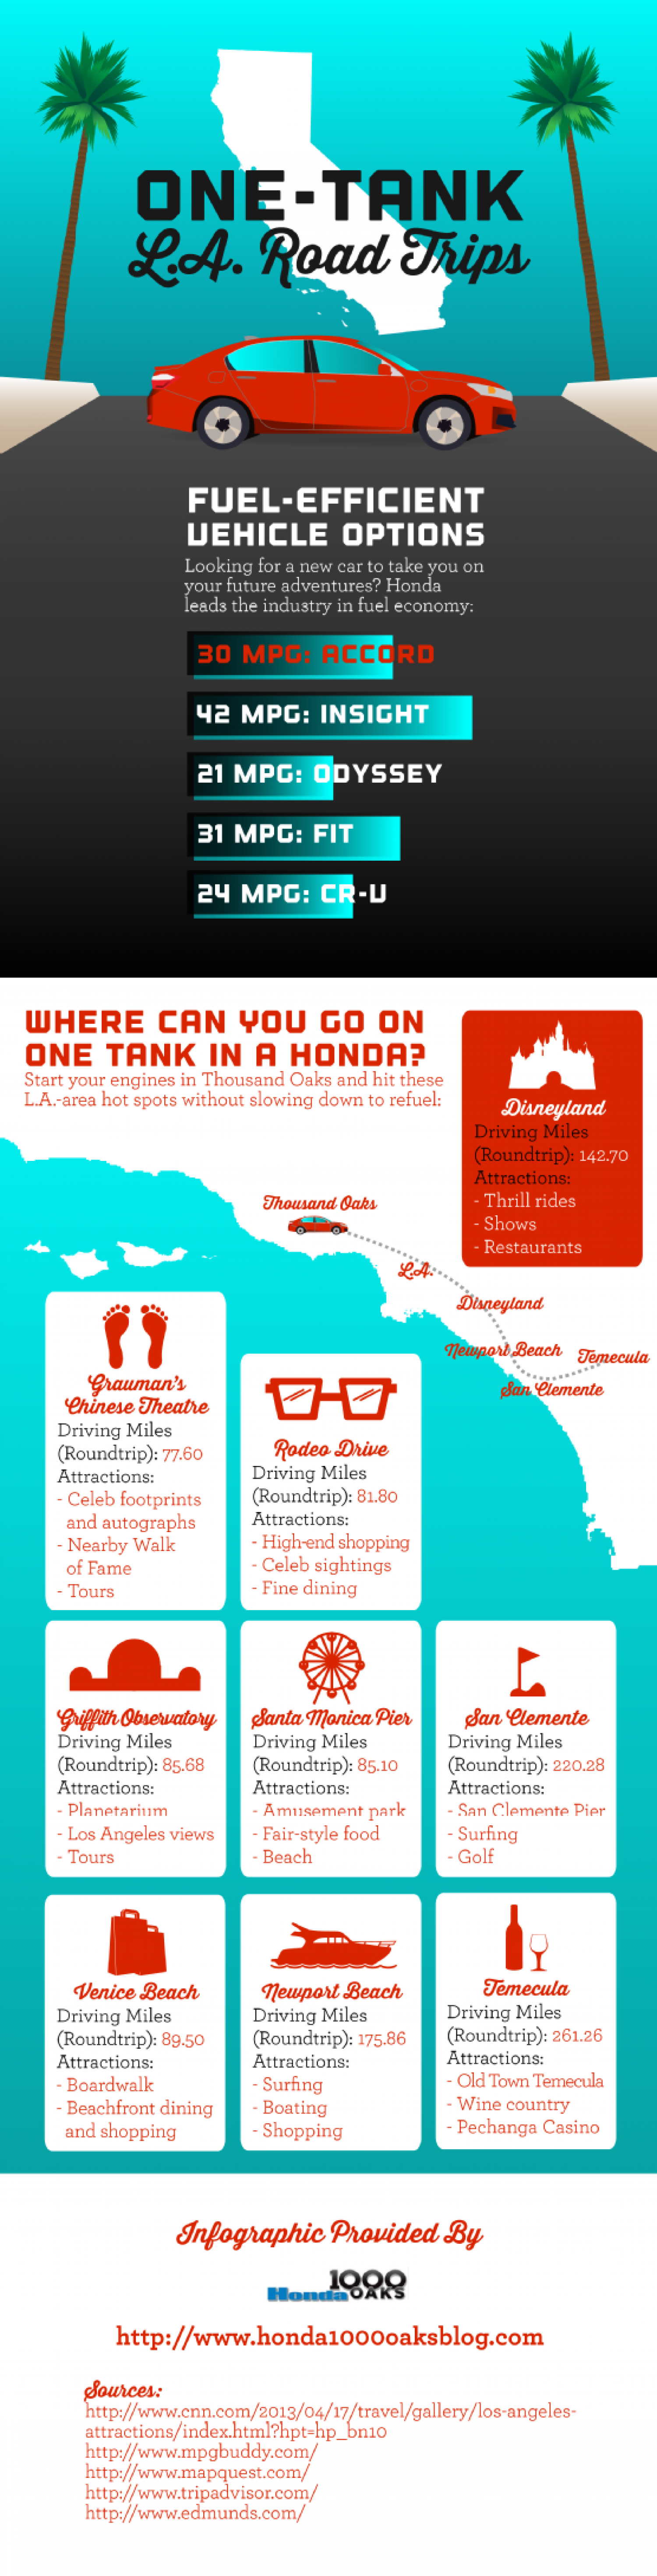 One-Tank LA Road Trips Infographic